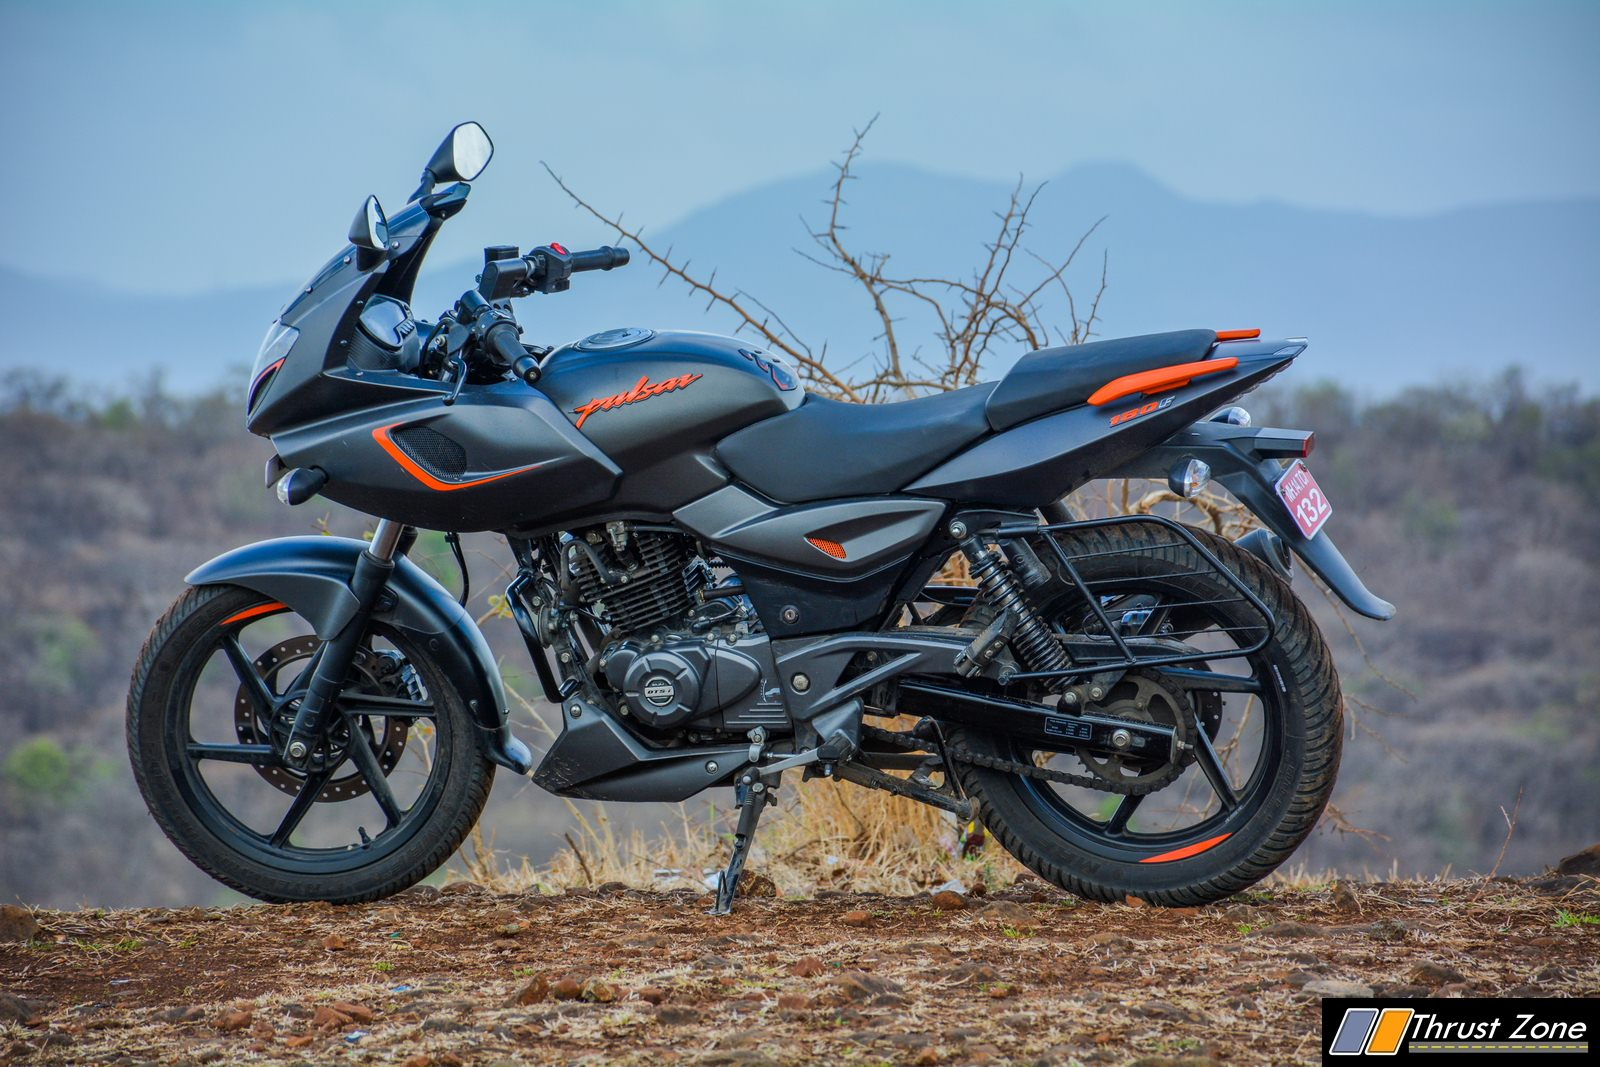 2019-Bajaj-Pulsar-180F-Review-15